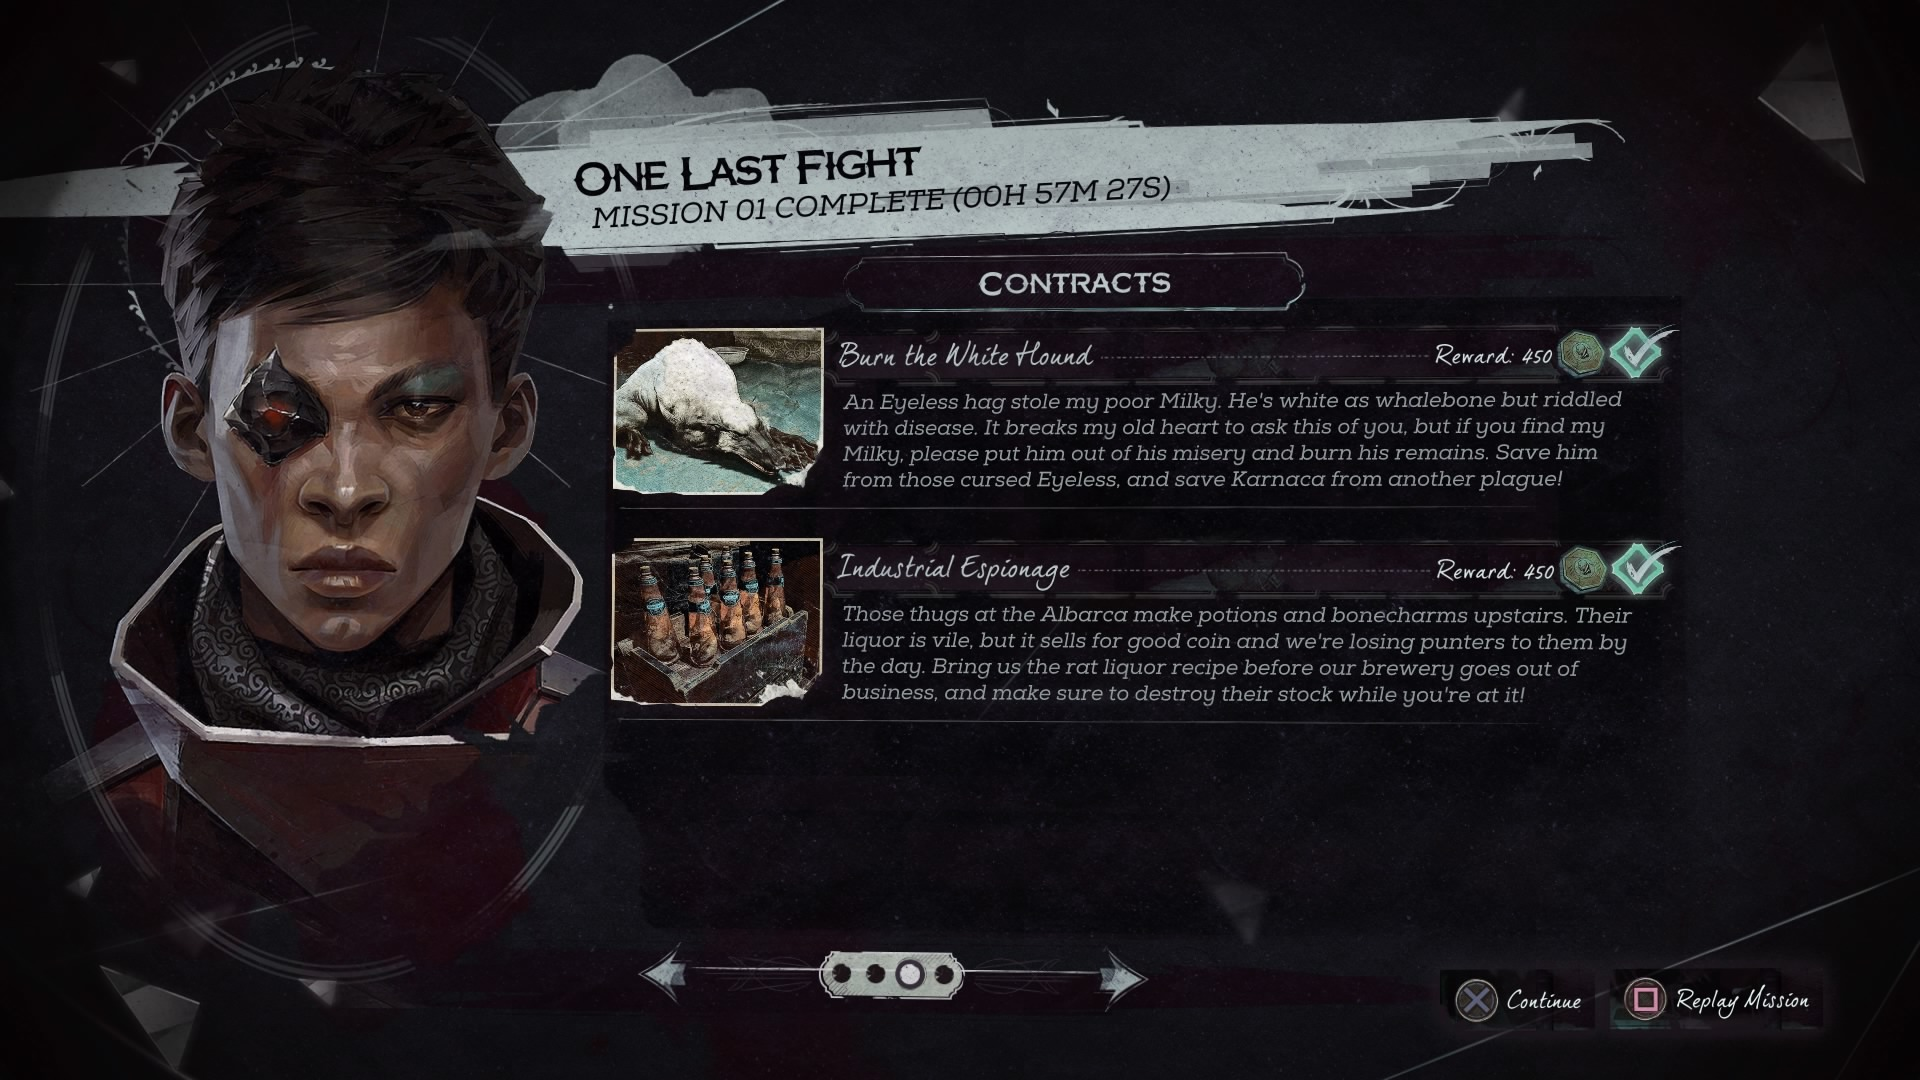 Dishonored-Lamortdel-Outsider PS4 Test 002